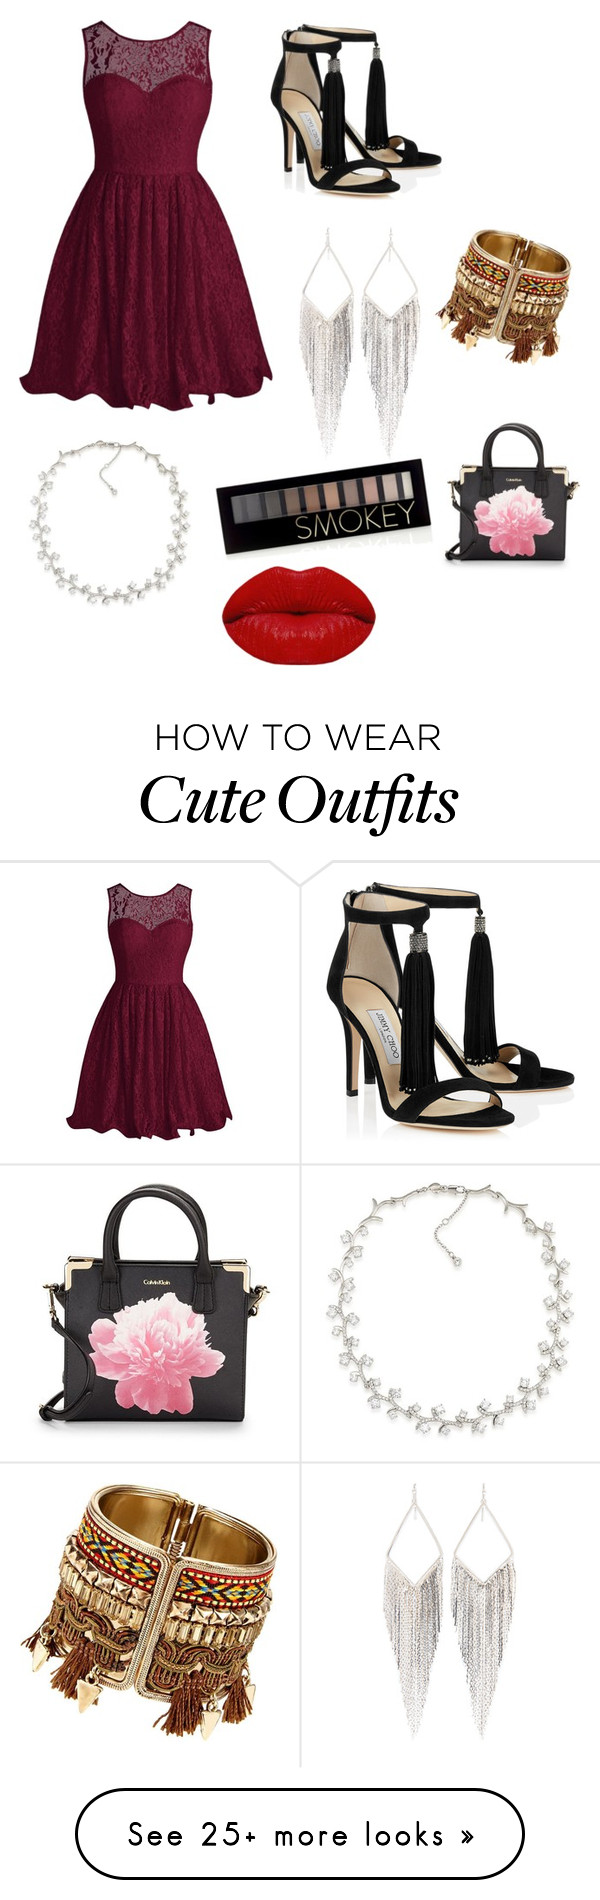 """Cute Party Outfit"" by lsantana13 on Polyvore featuring Jules Smith, Carolee, Forever 21, Winky Lux and Calvin Klein"